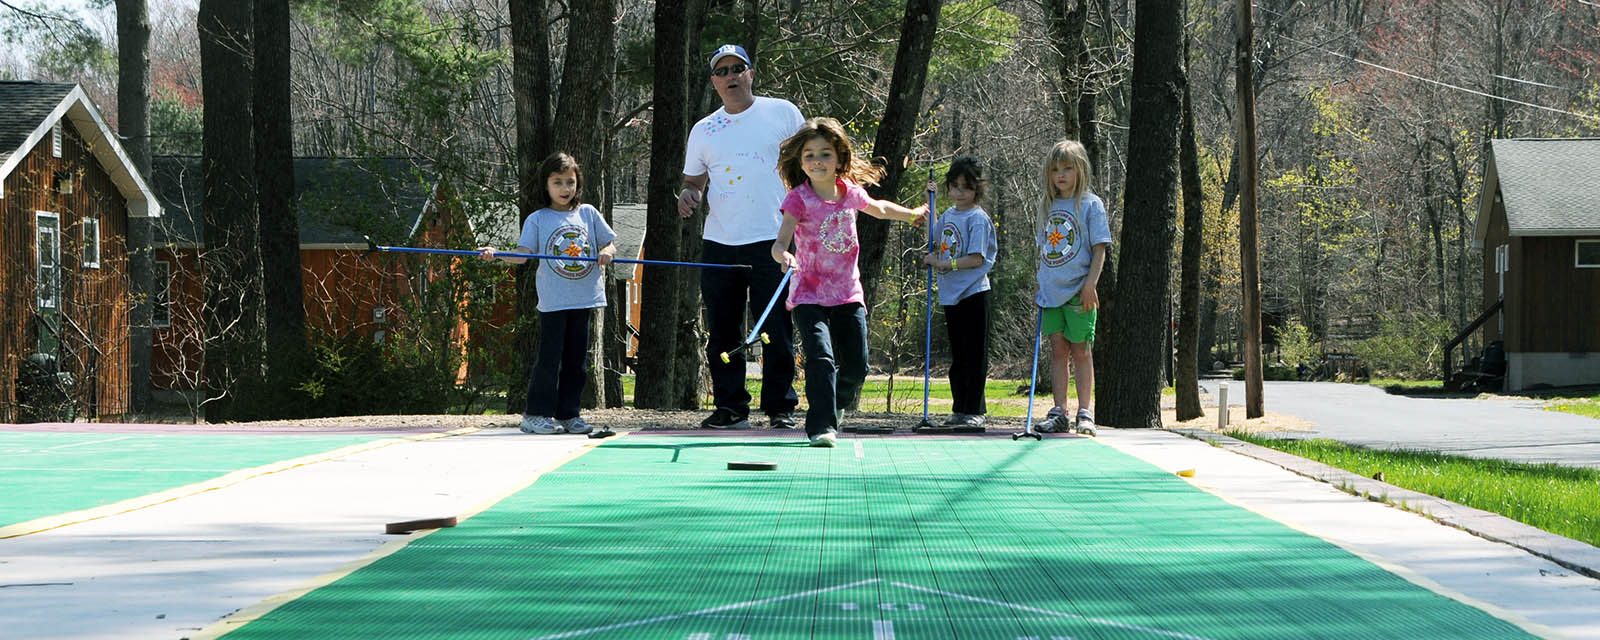 kids playing shuffleboard